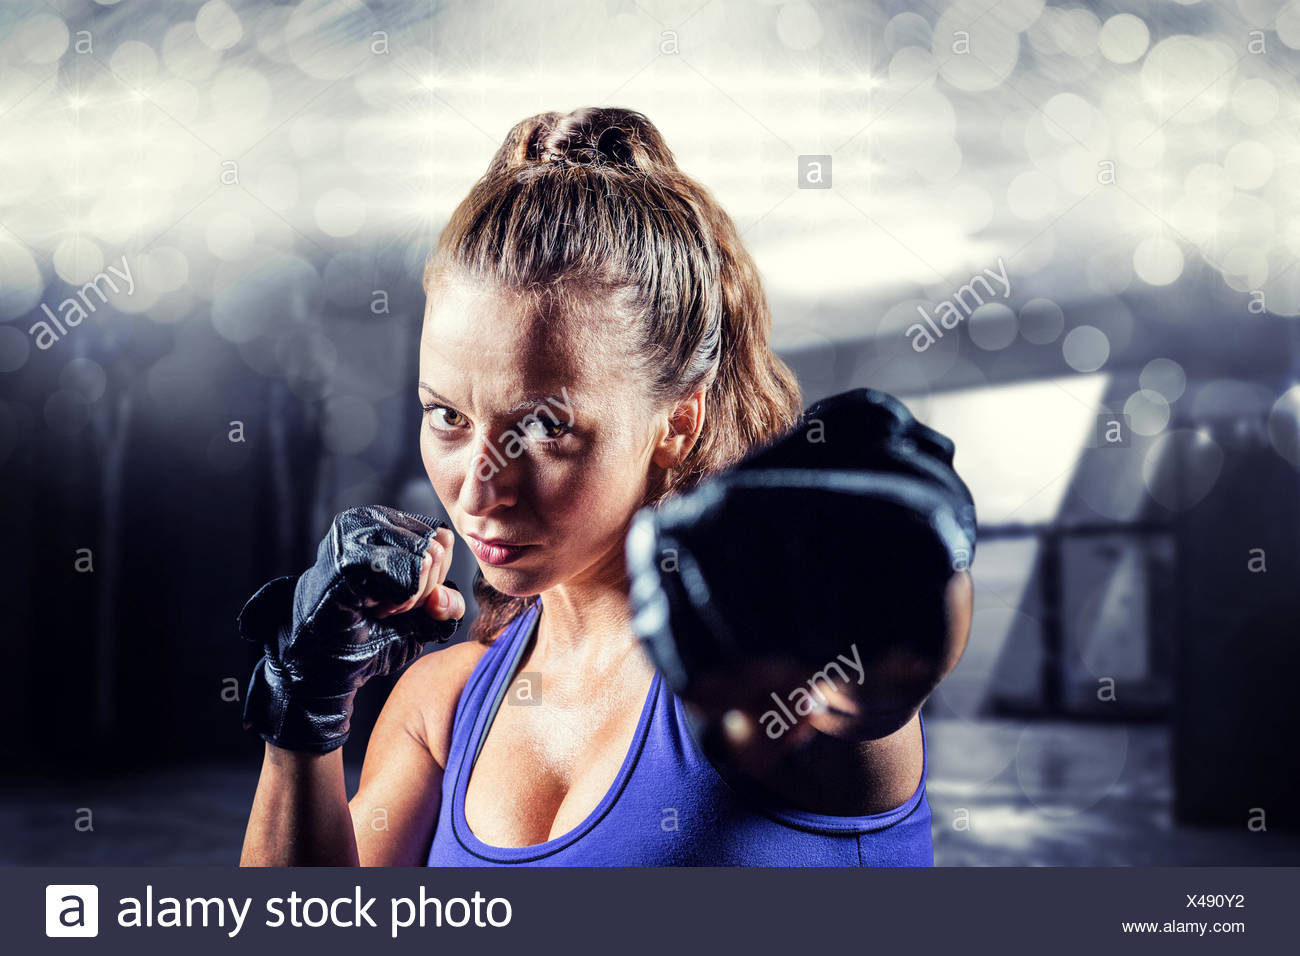 Composite image of portrait of female fighter punching - Stock Image